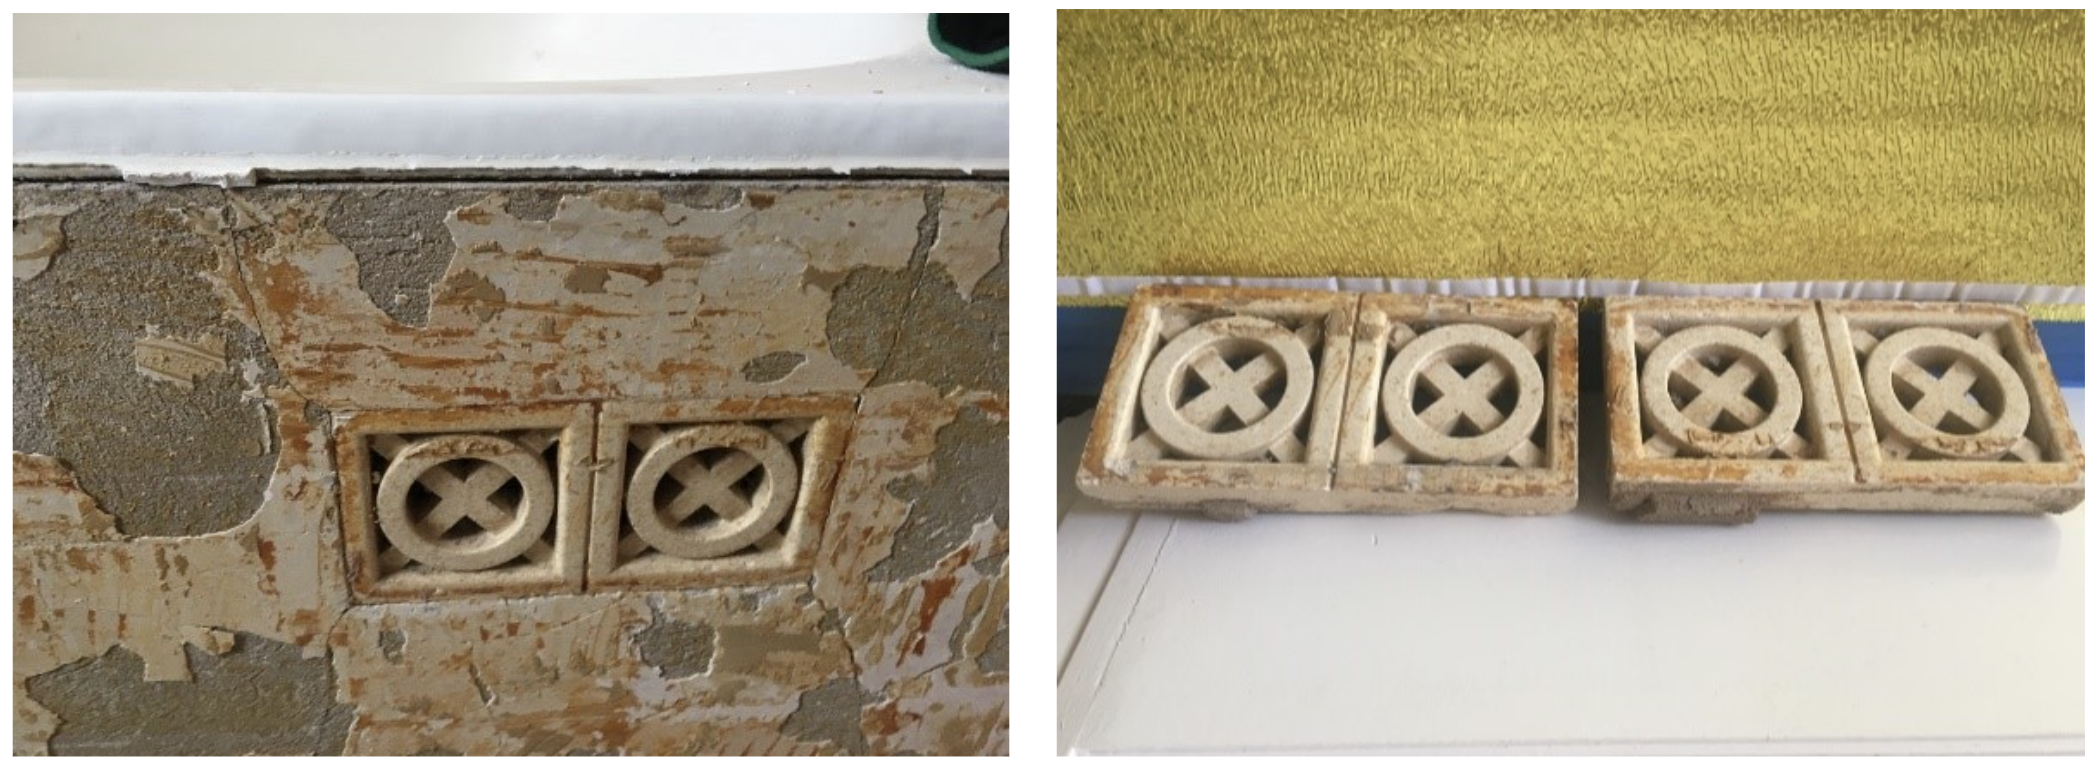 journey-home-interiors-forrest-au-1930s-bathroom-remodel-intricate-vents-found-after-tile-removed